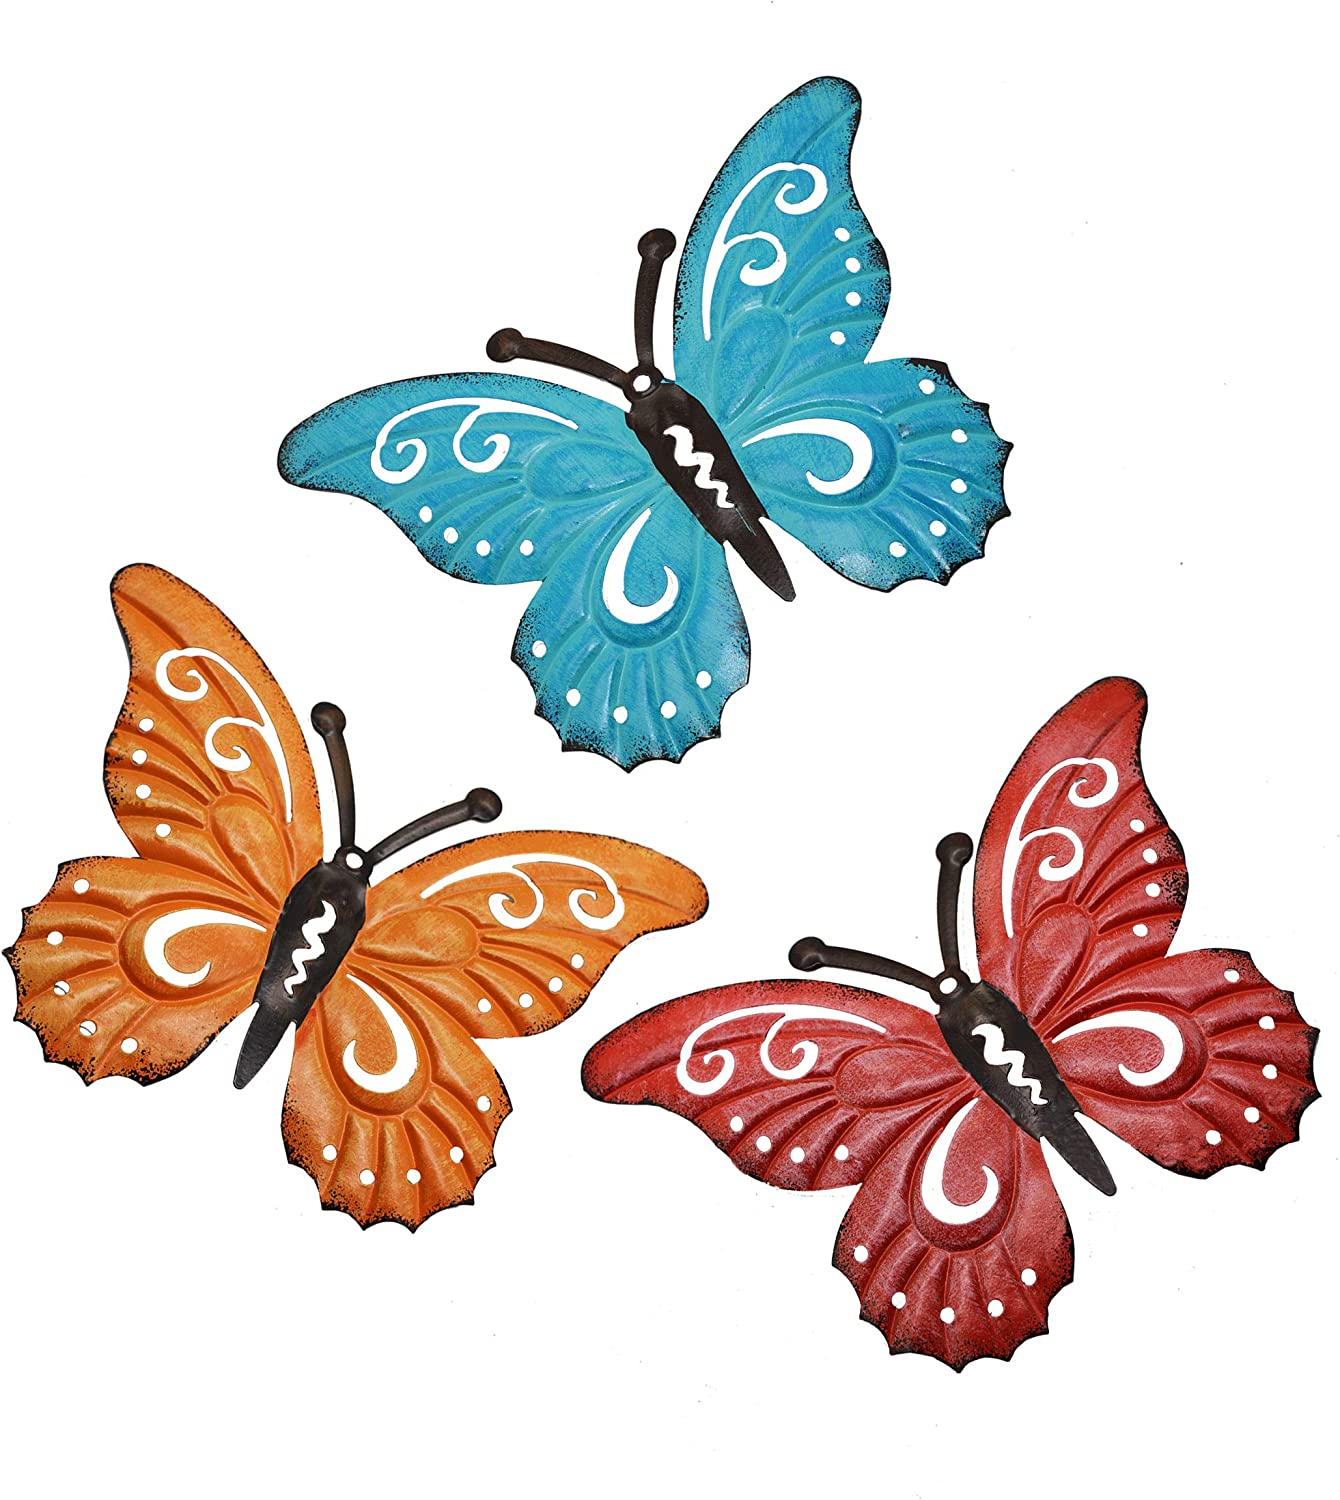 VOTENVO Metal Butterfly Wall Decor, Set of 3 Hand-Painted Sculpted Wall Art Product, 3D Butterfly Wall Decor Hanging for Indoor Outdoor Home Bedroom Living Room Office Garden